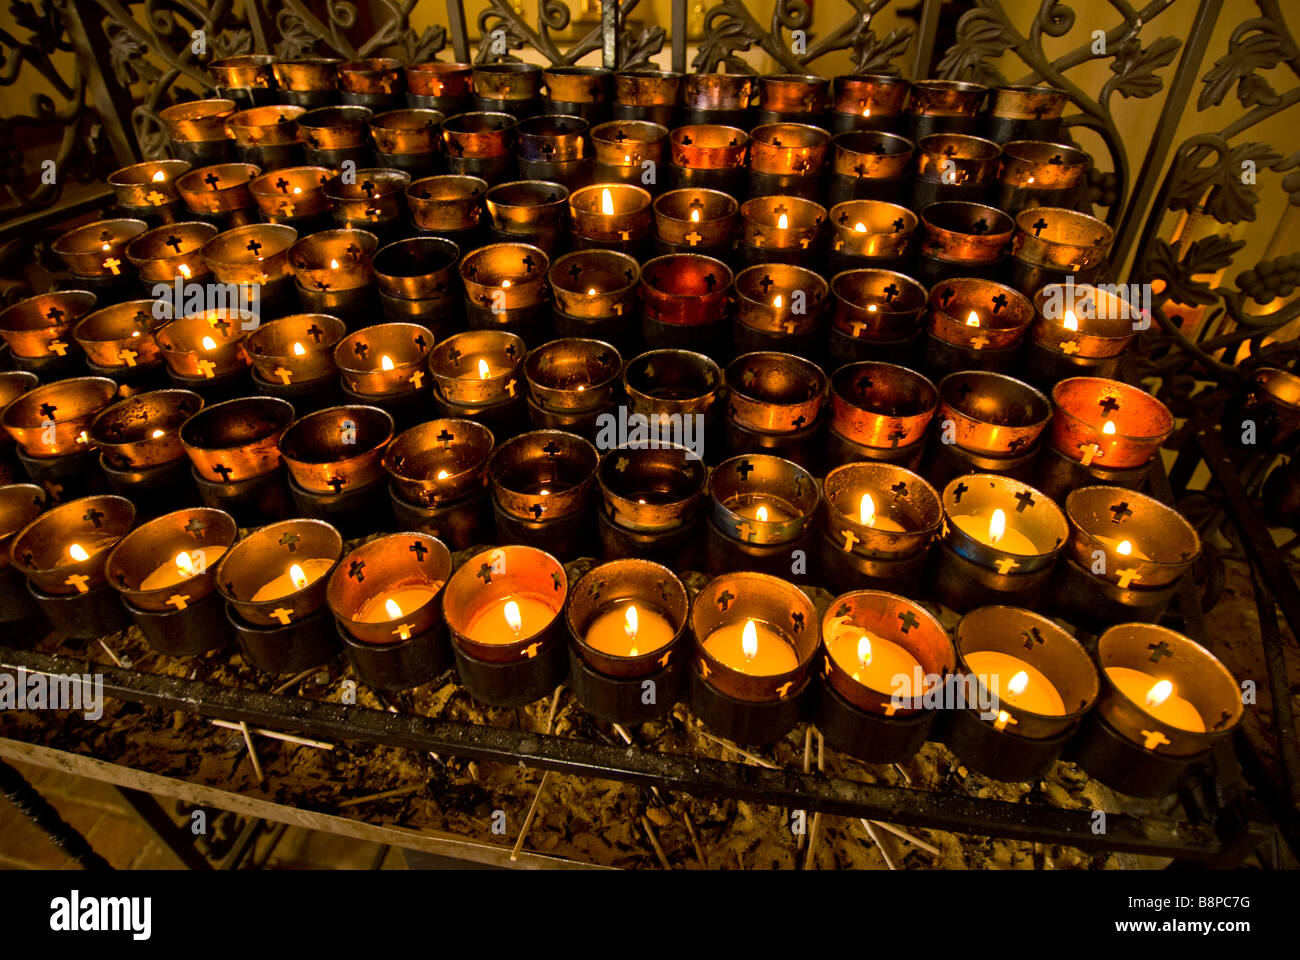 votive candles inside church rack of dozens of candles burning religious ceremony custom practice - Stock Image